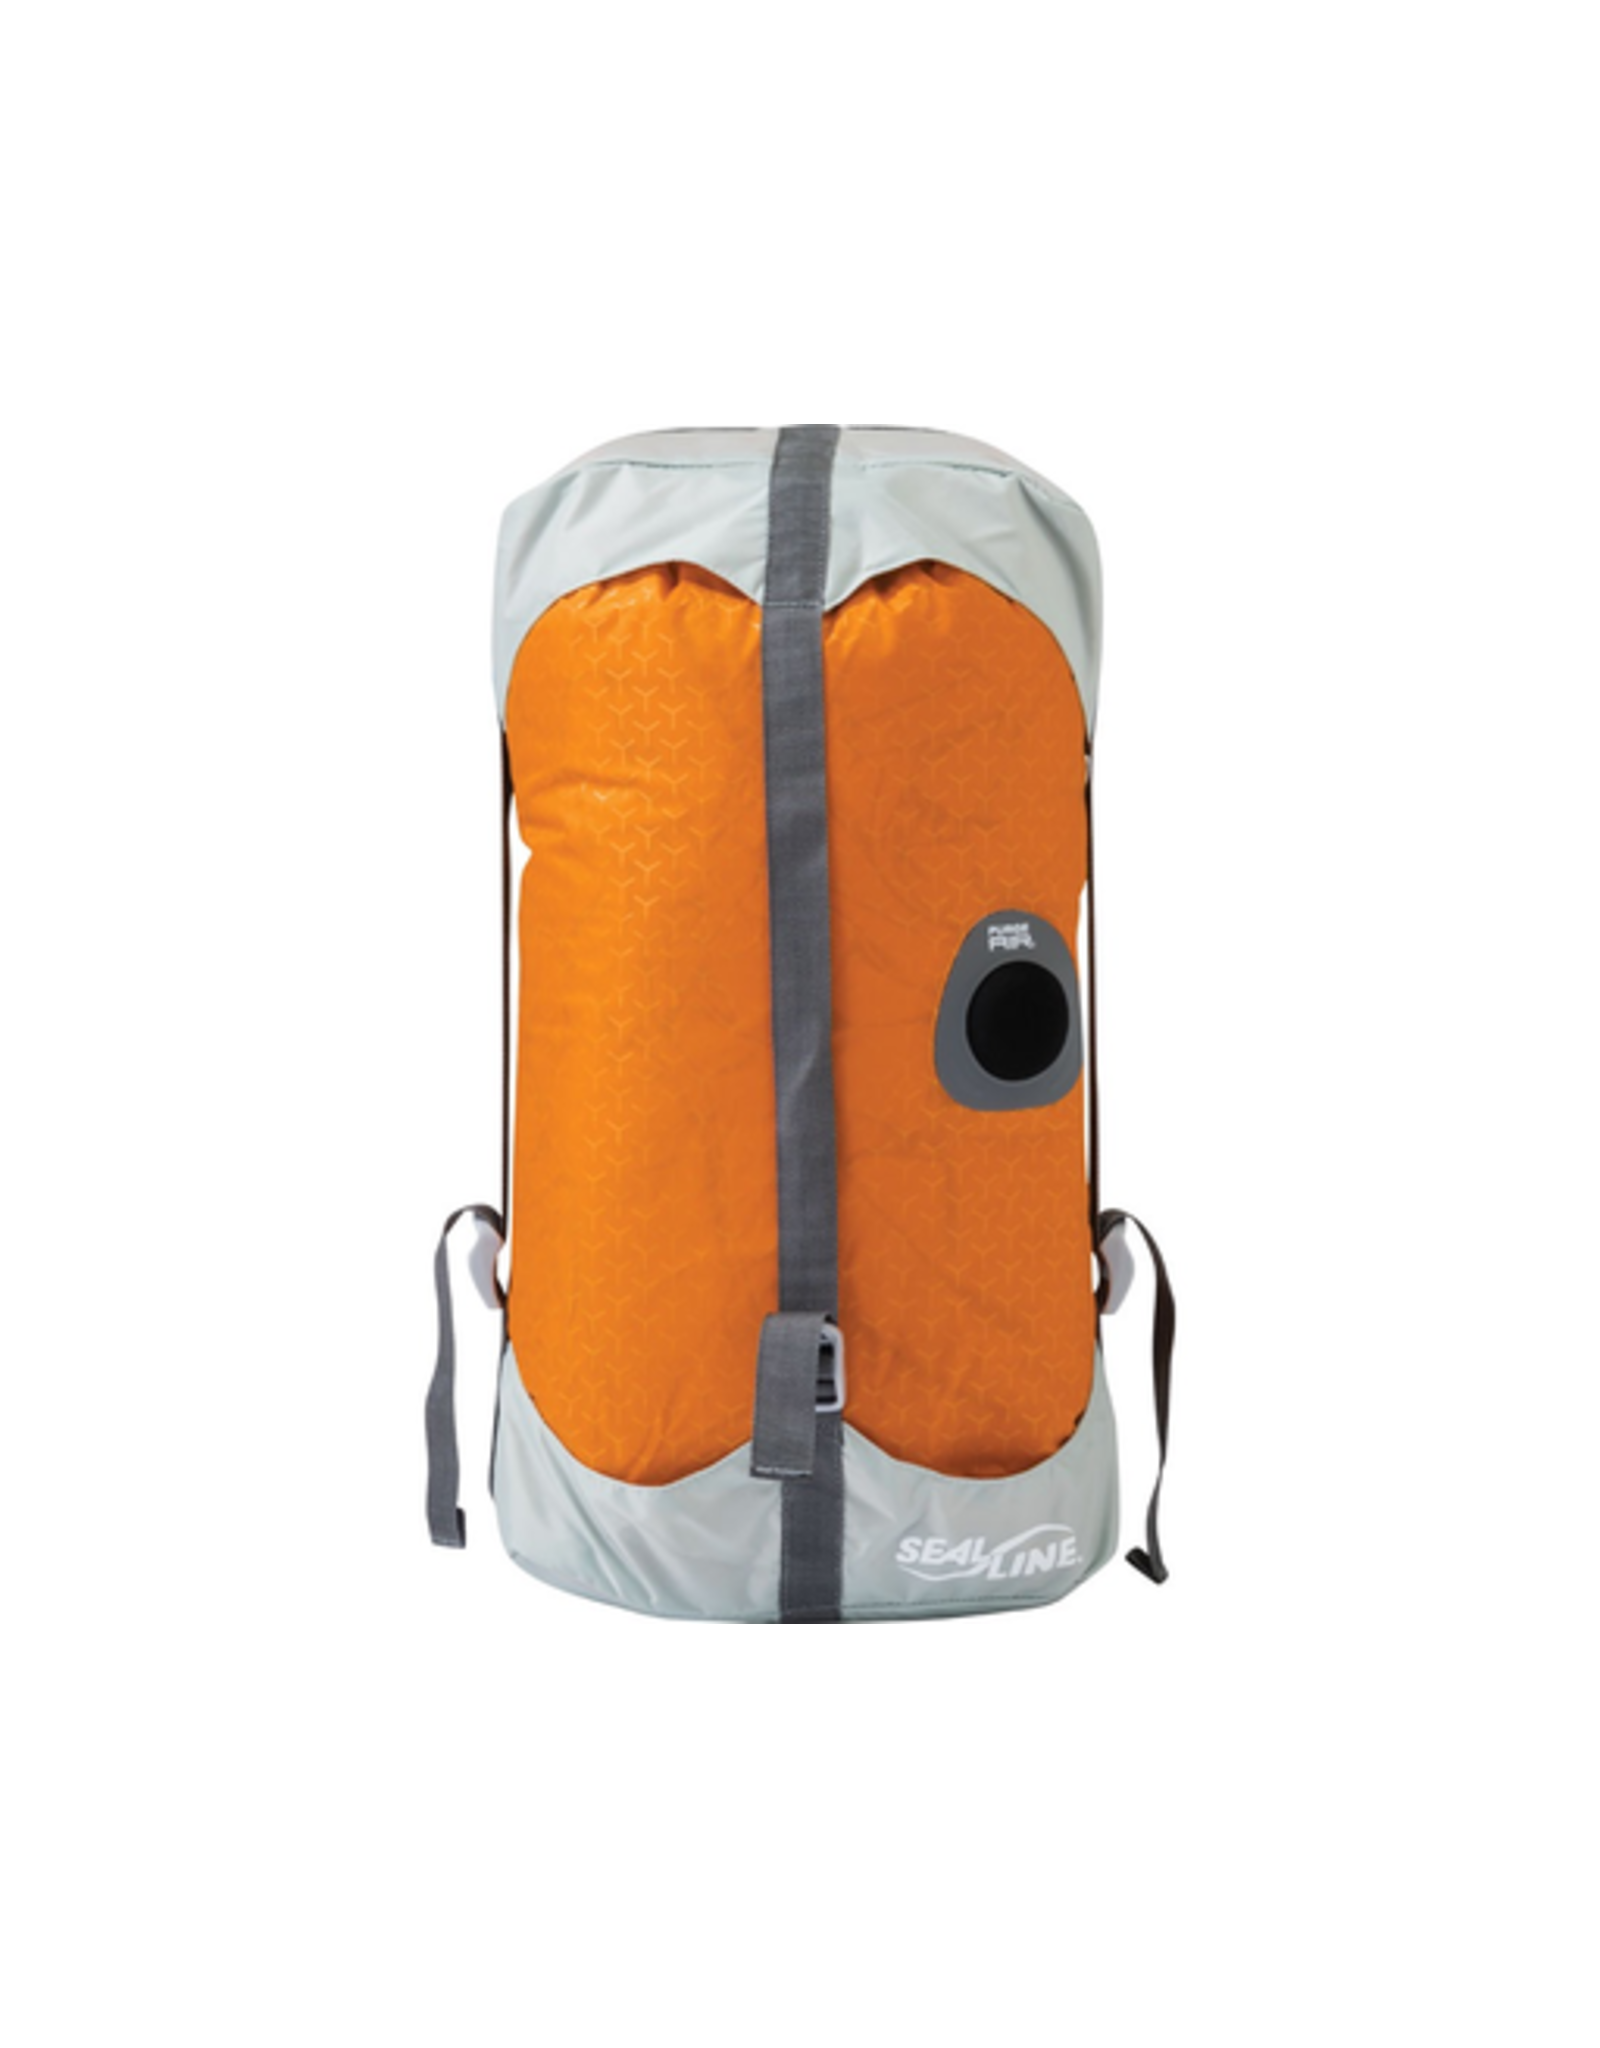 SeaLine SealLine Blocker DRY Compression Sack 20L, Orange